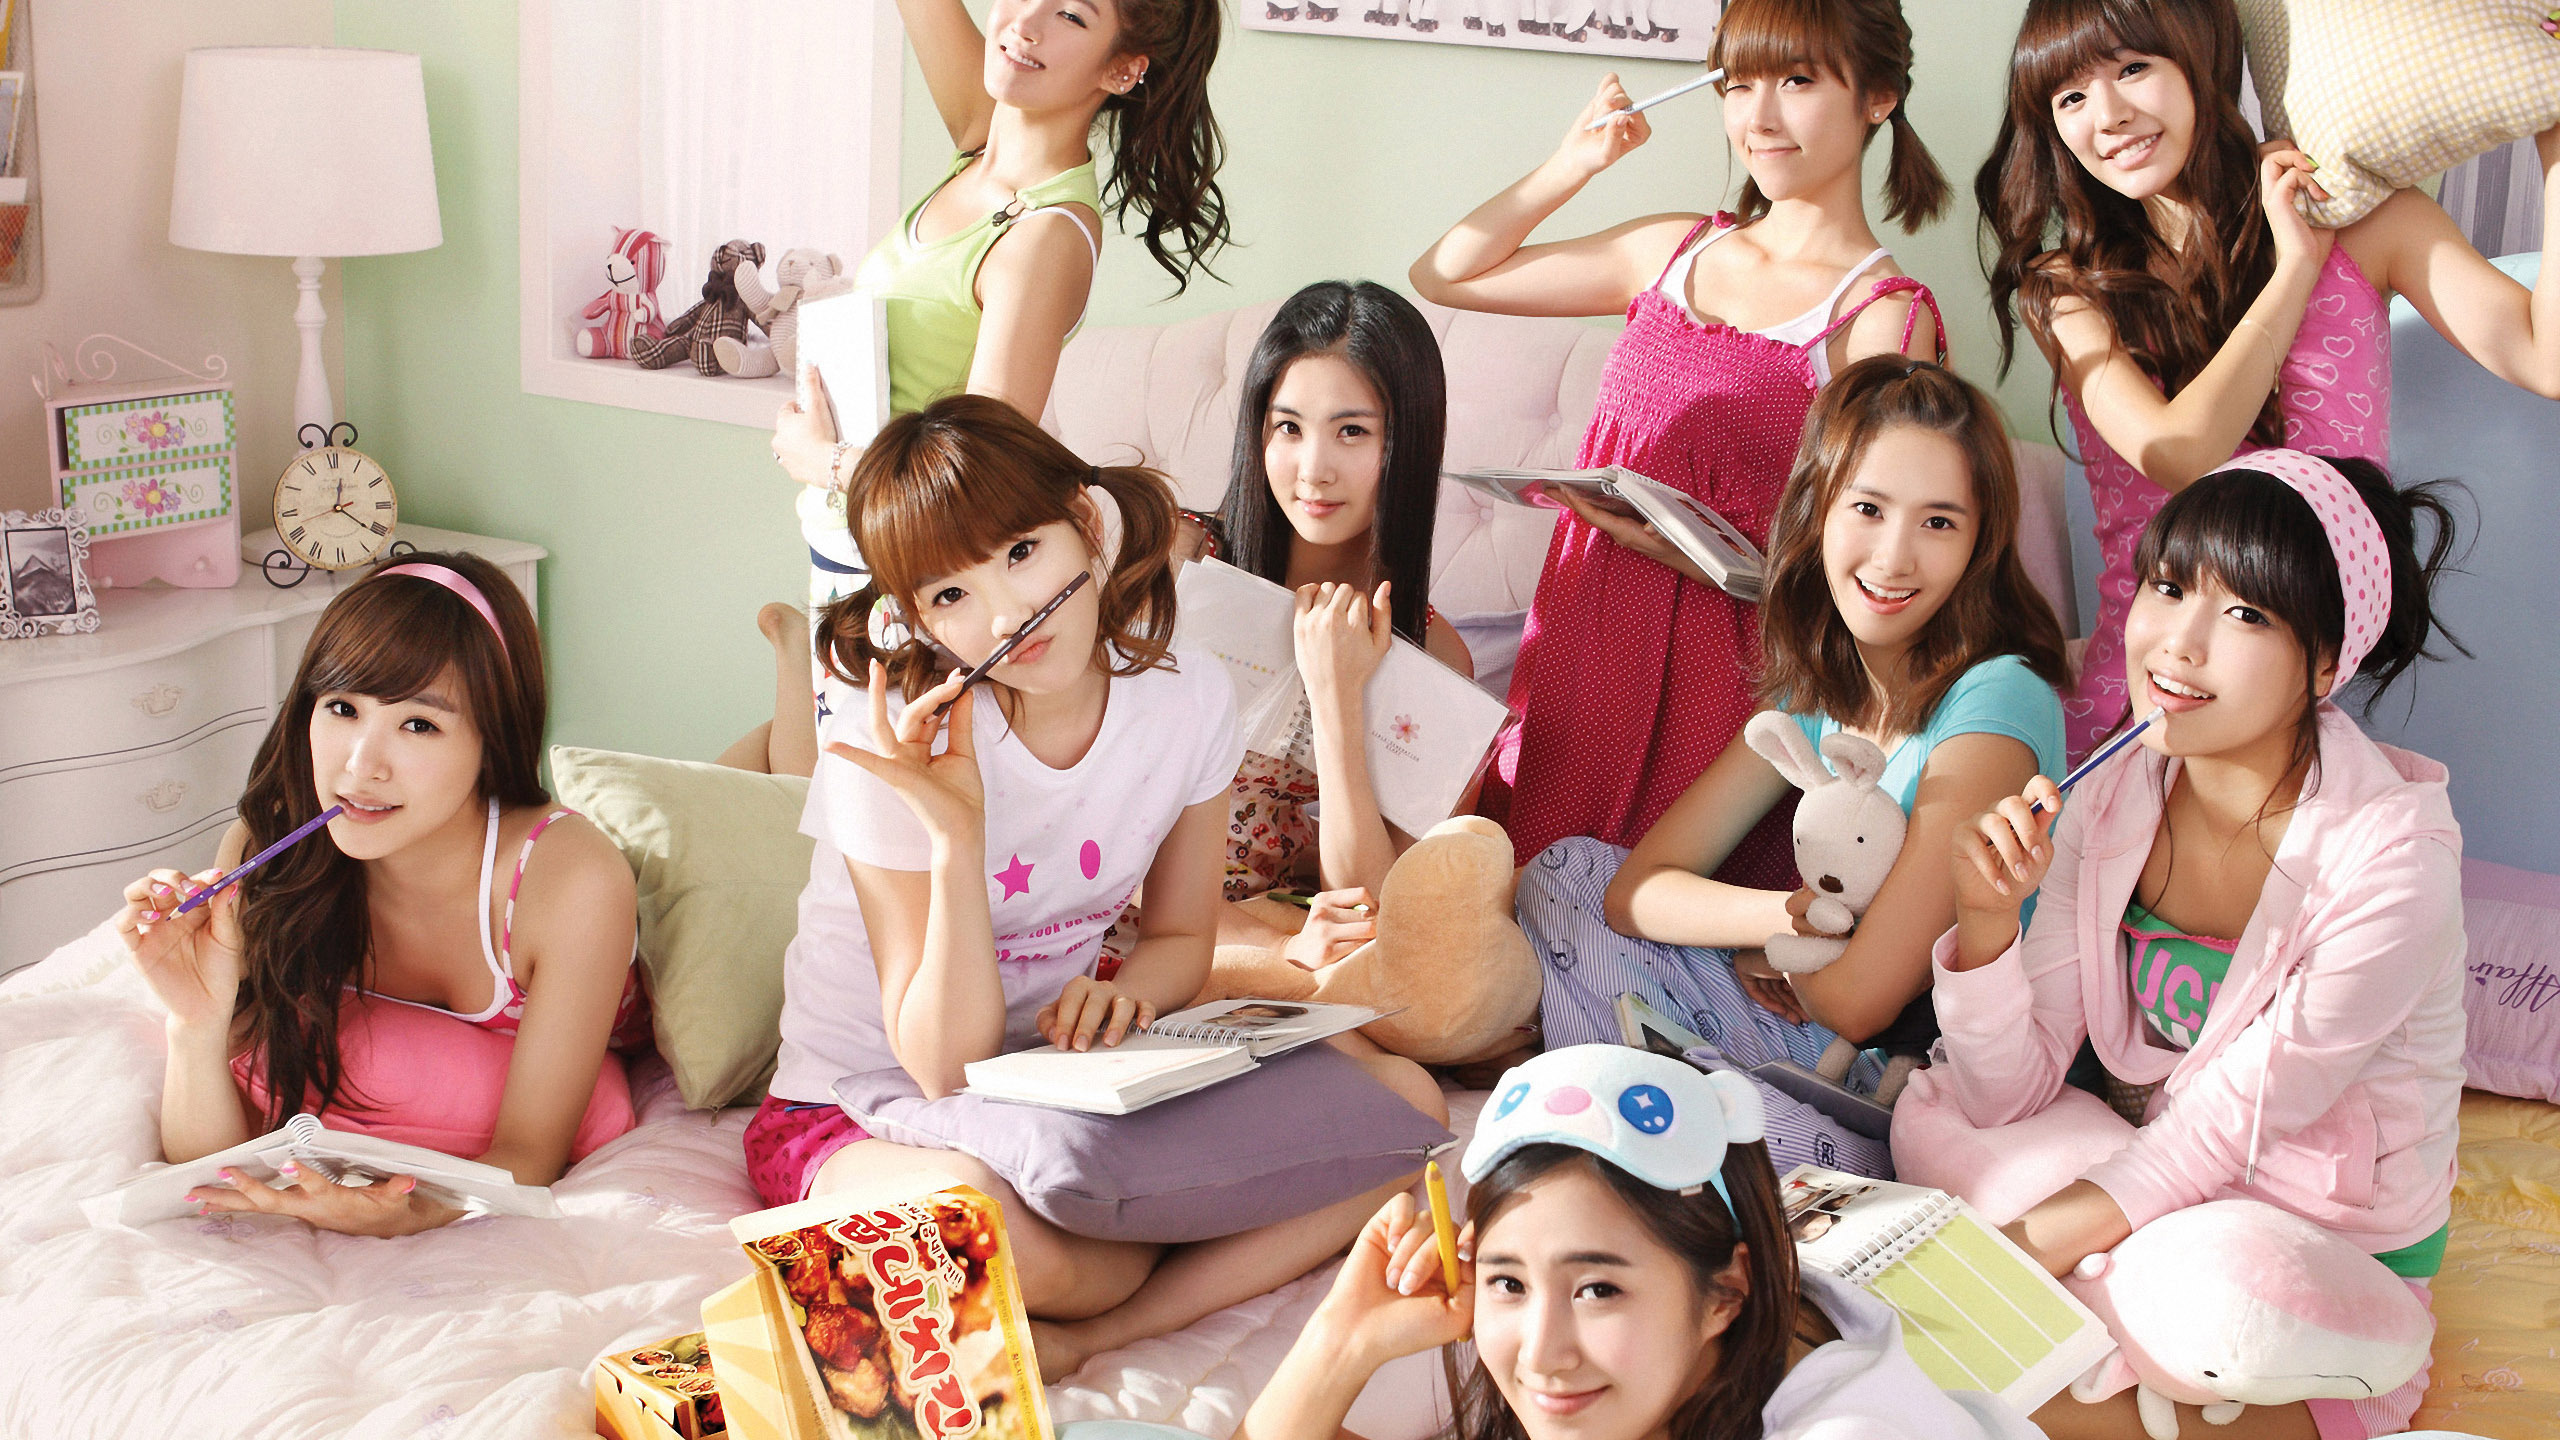 snsd-girls-at-the-pajama-party-38818